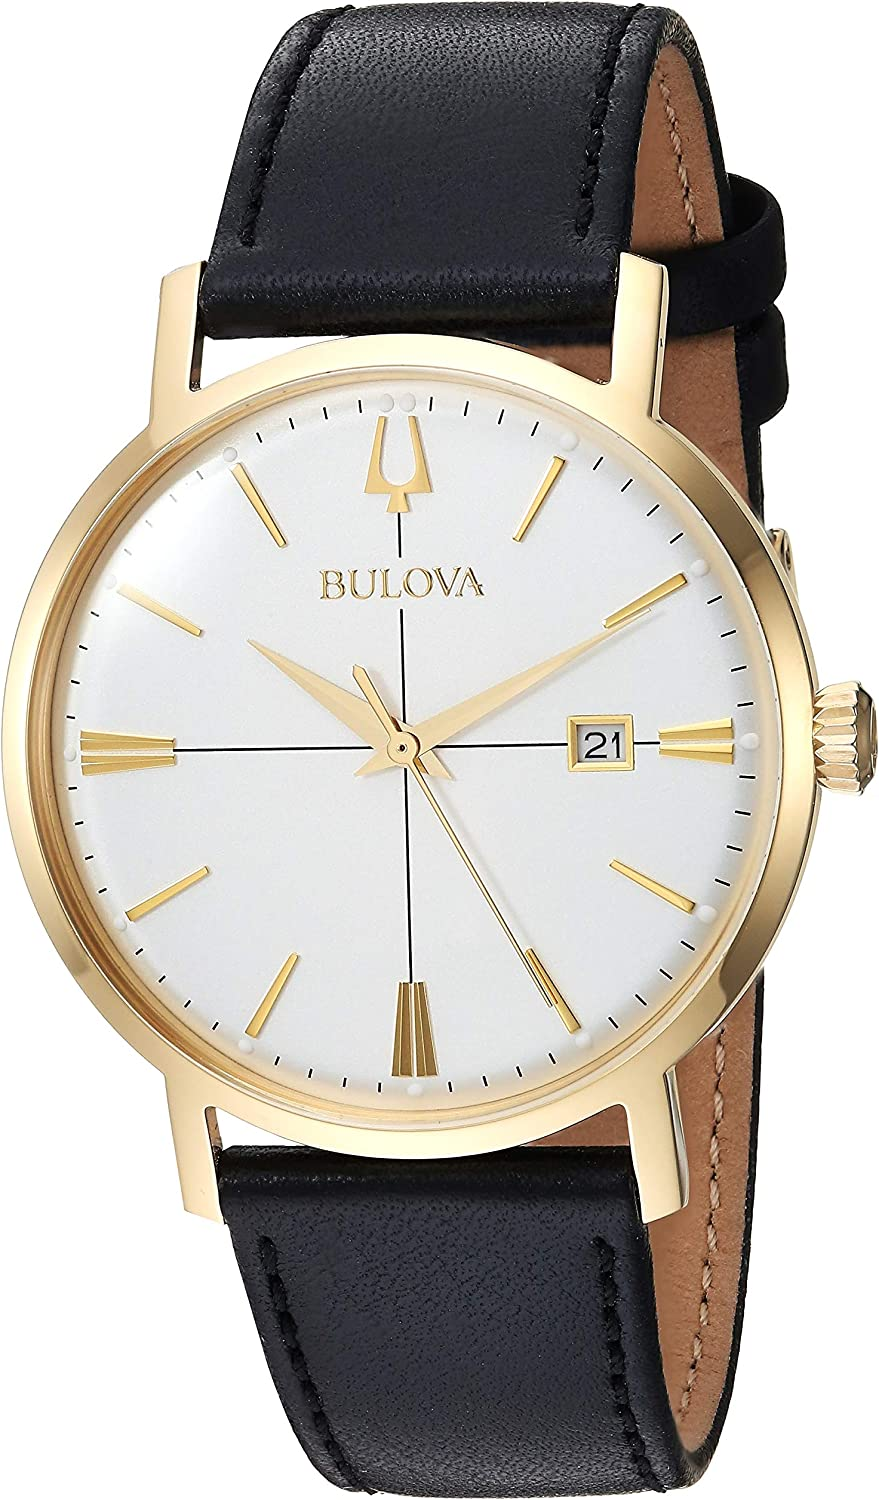 Bulova Dress Watch Model 97B172